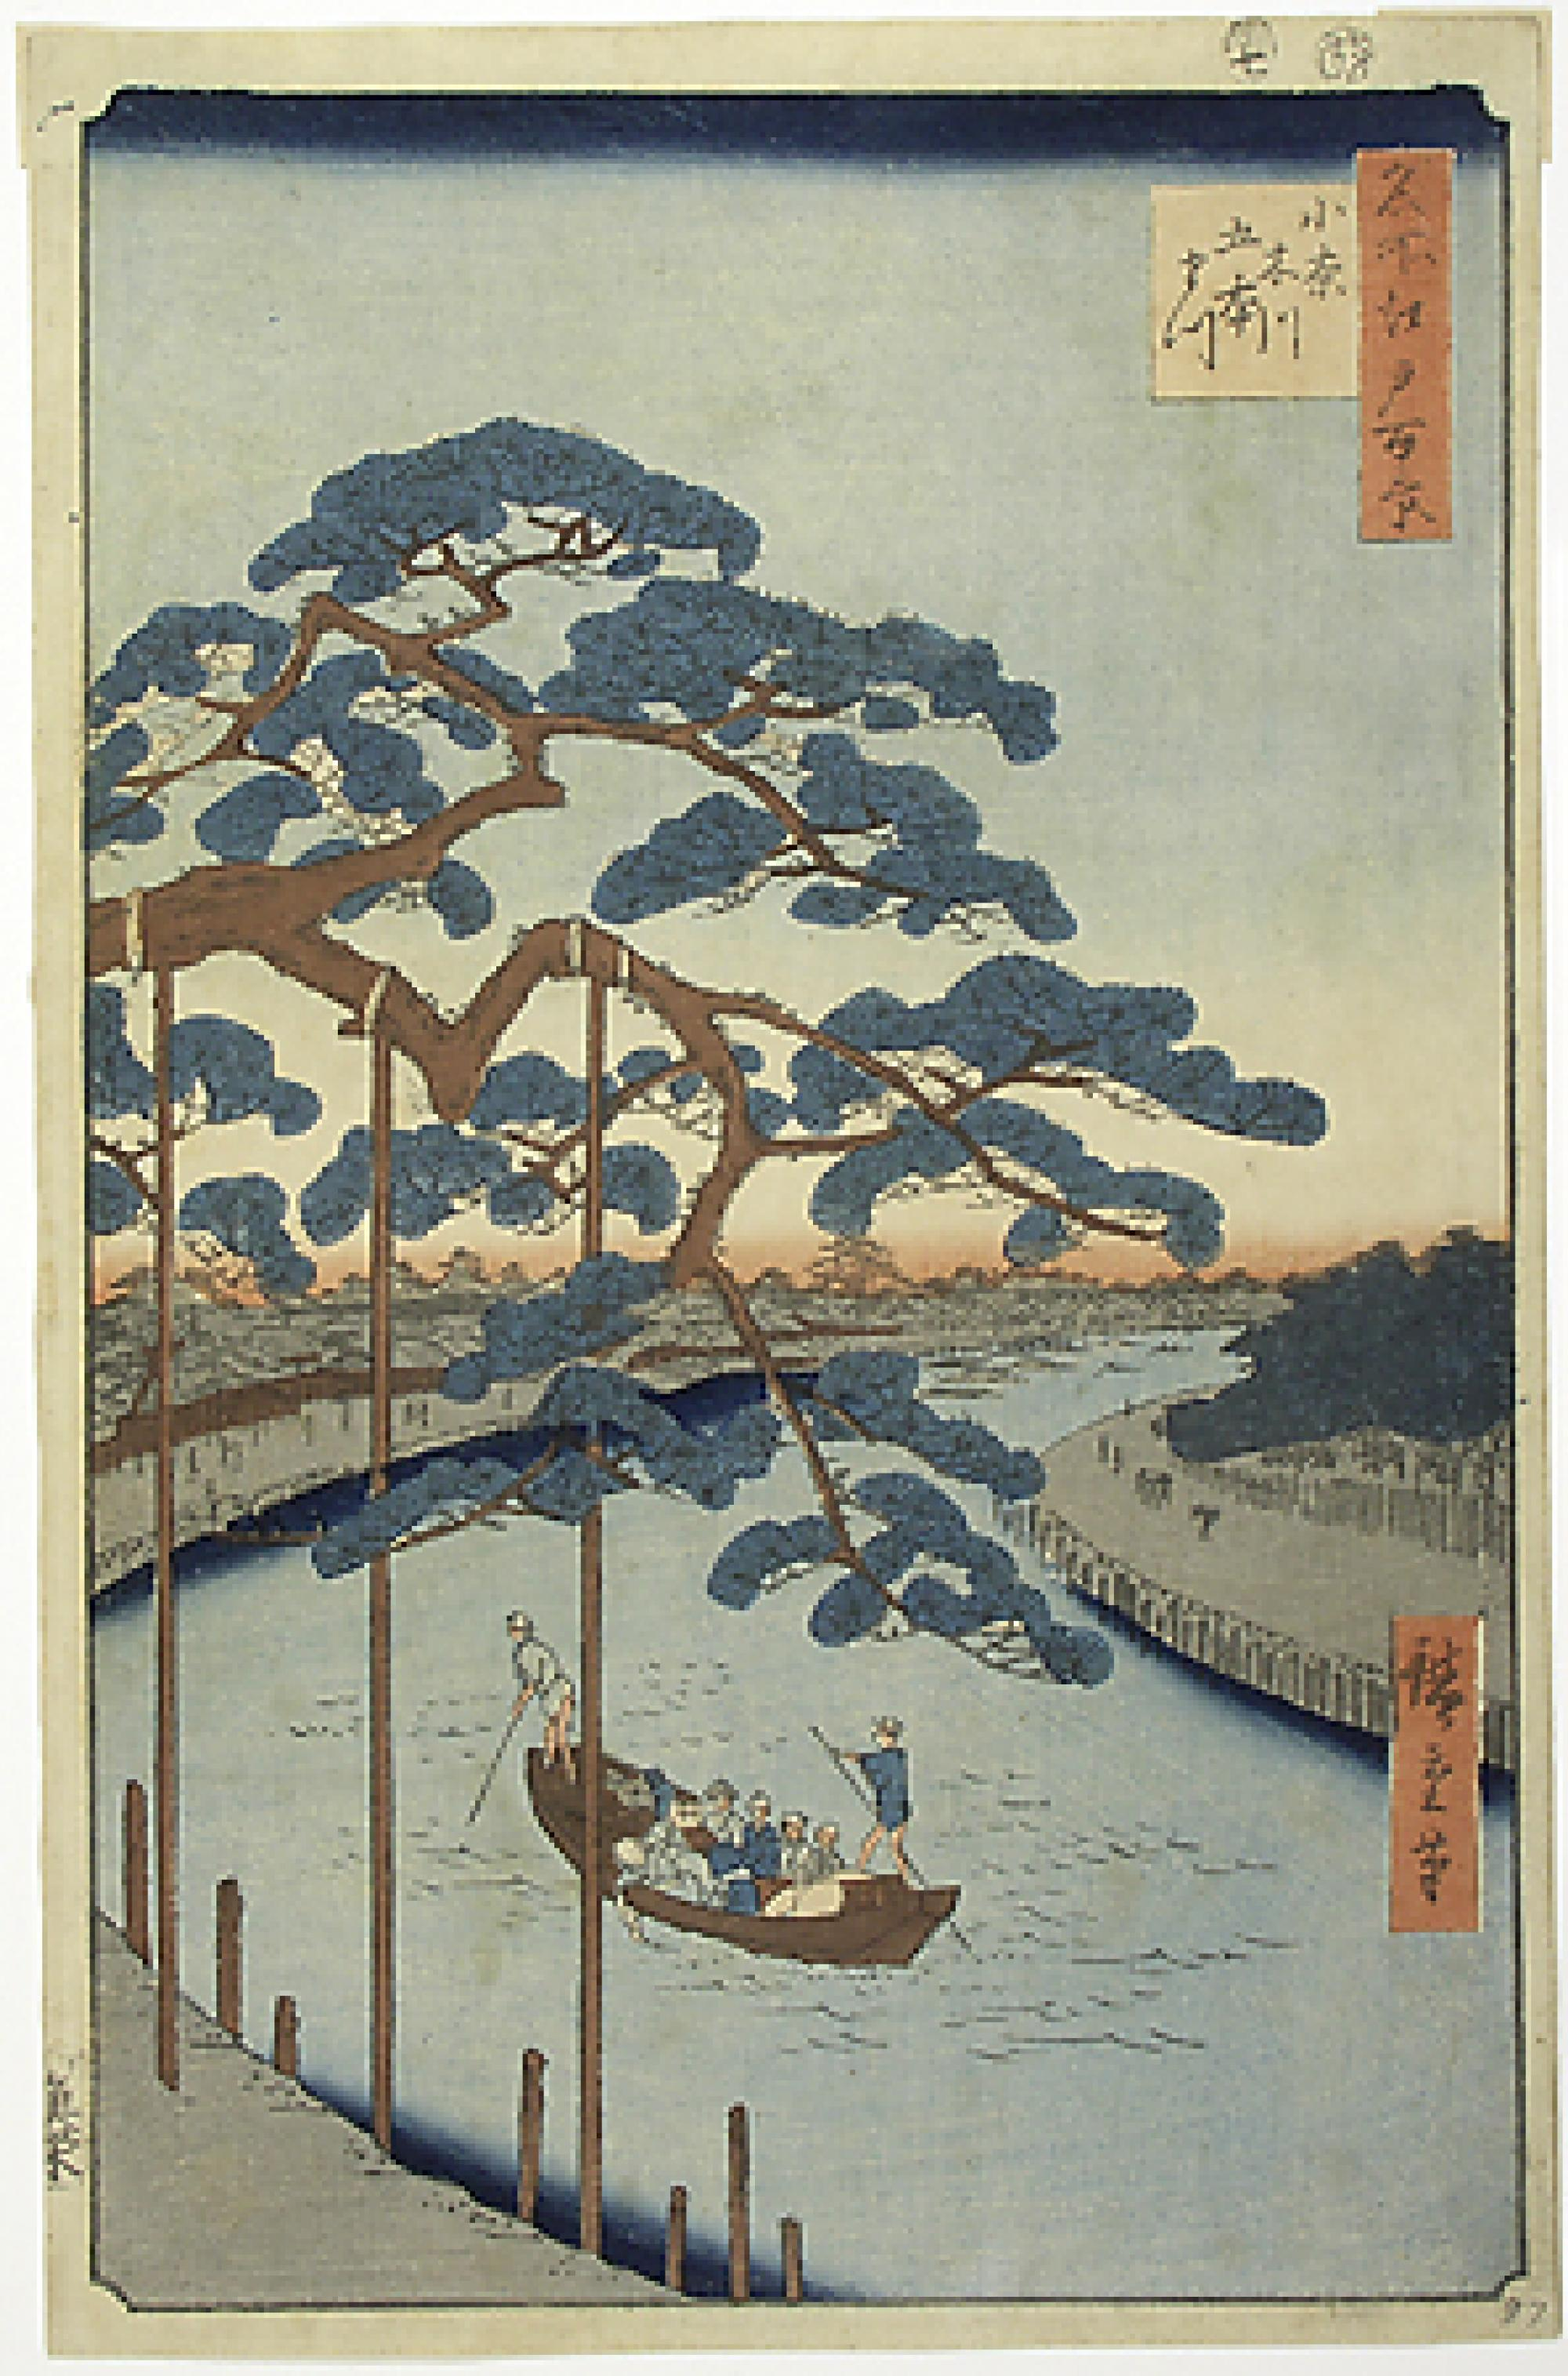 Utagawa Kunisada,  The Fifty Three Stations of the Tokaido: #21 Mariko, 1852. UA Museum of Art Collections: Museum purchase with funds provided by the Edward J. Gallagher, Jr. Memorial Fund.